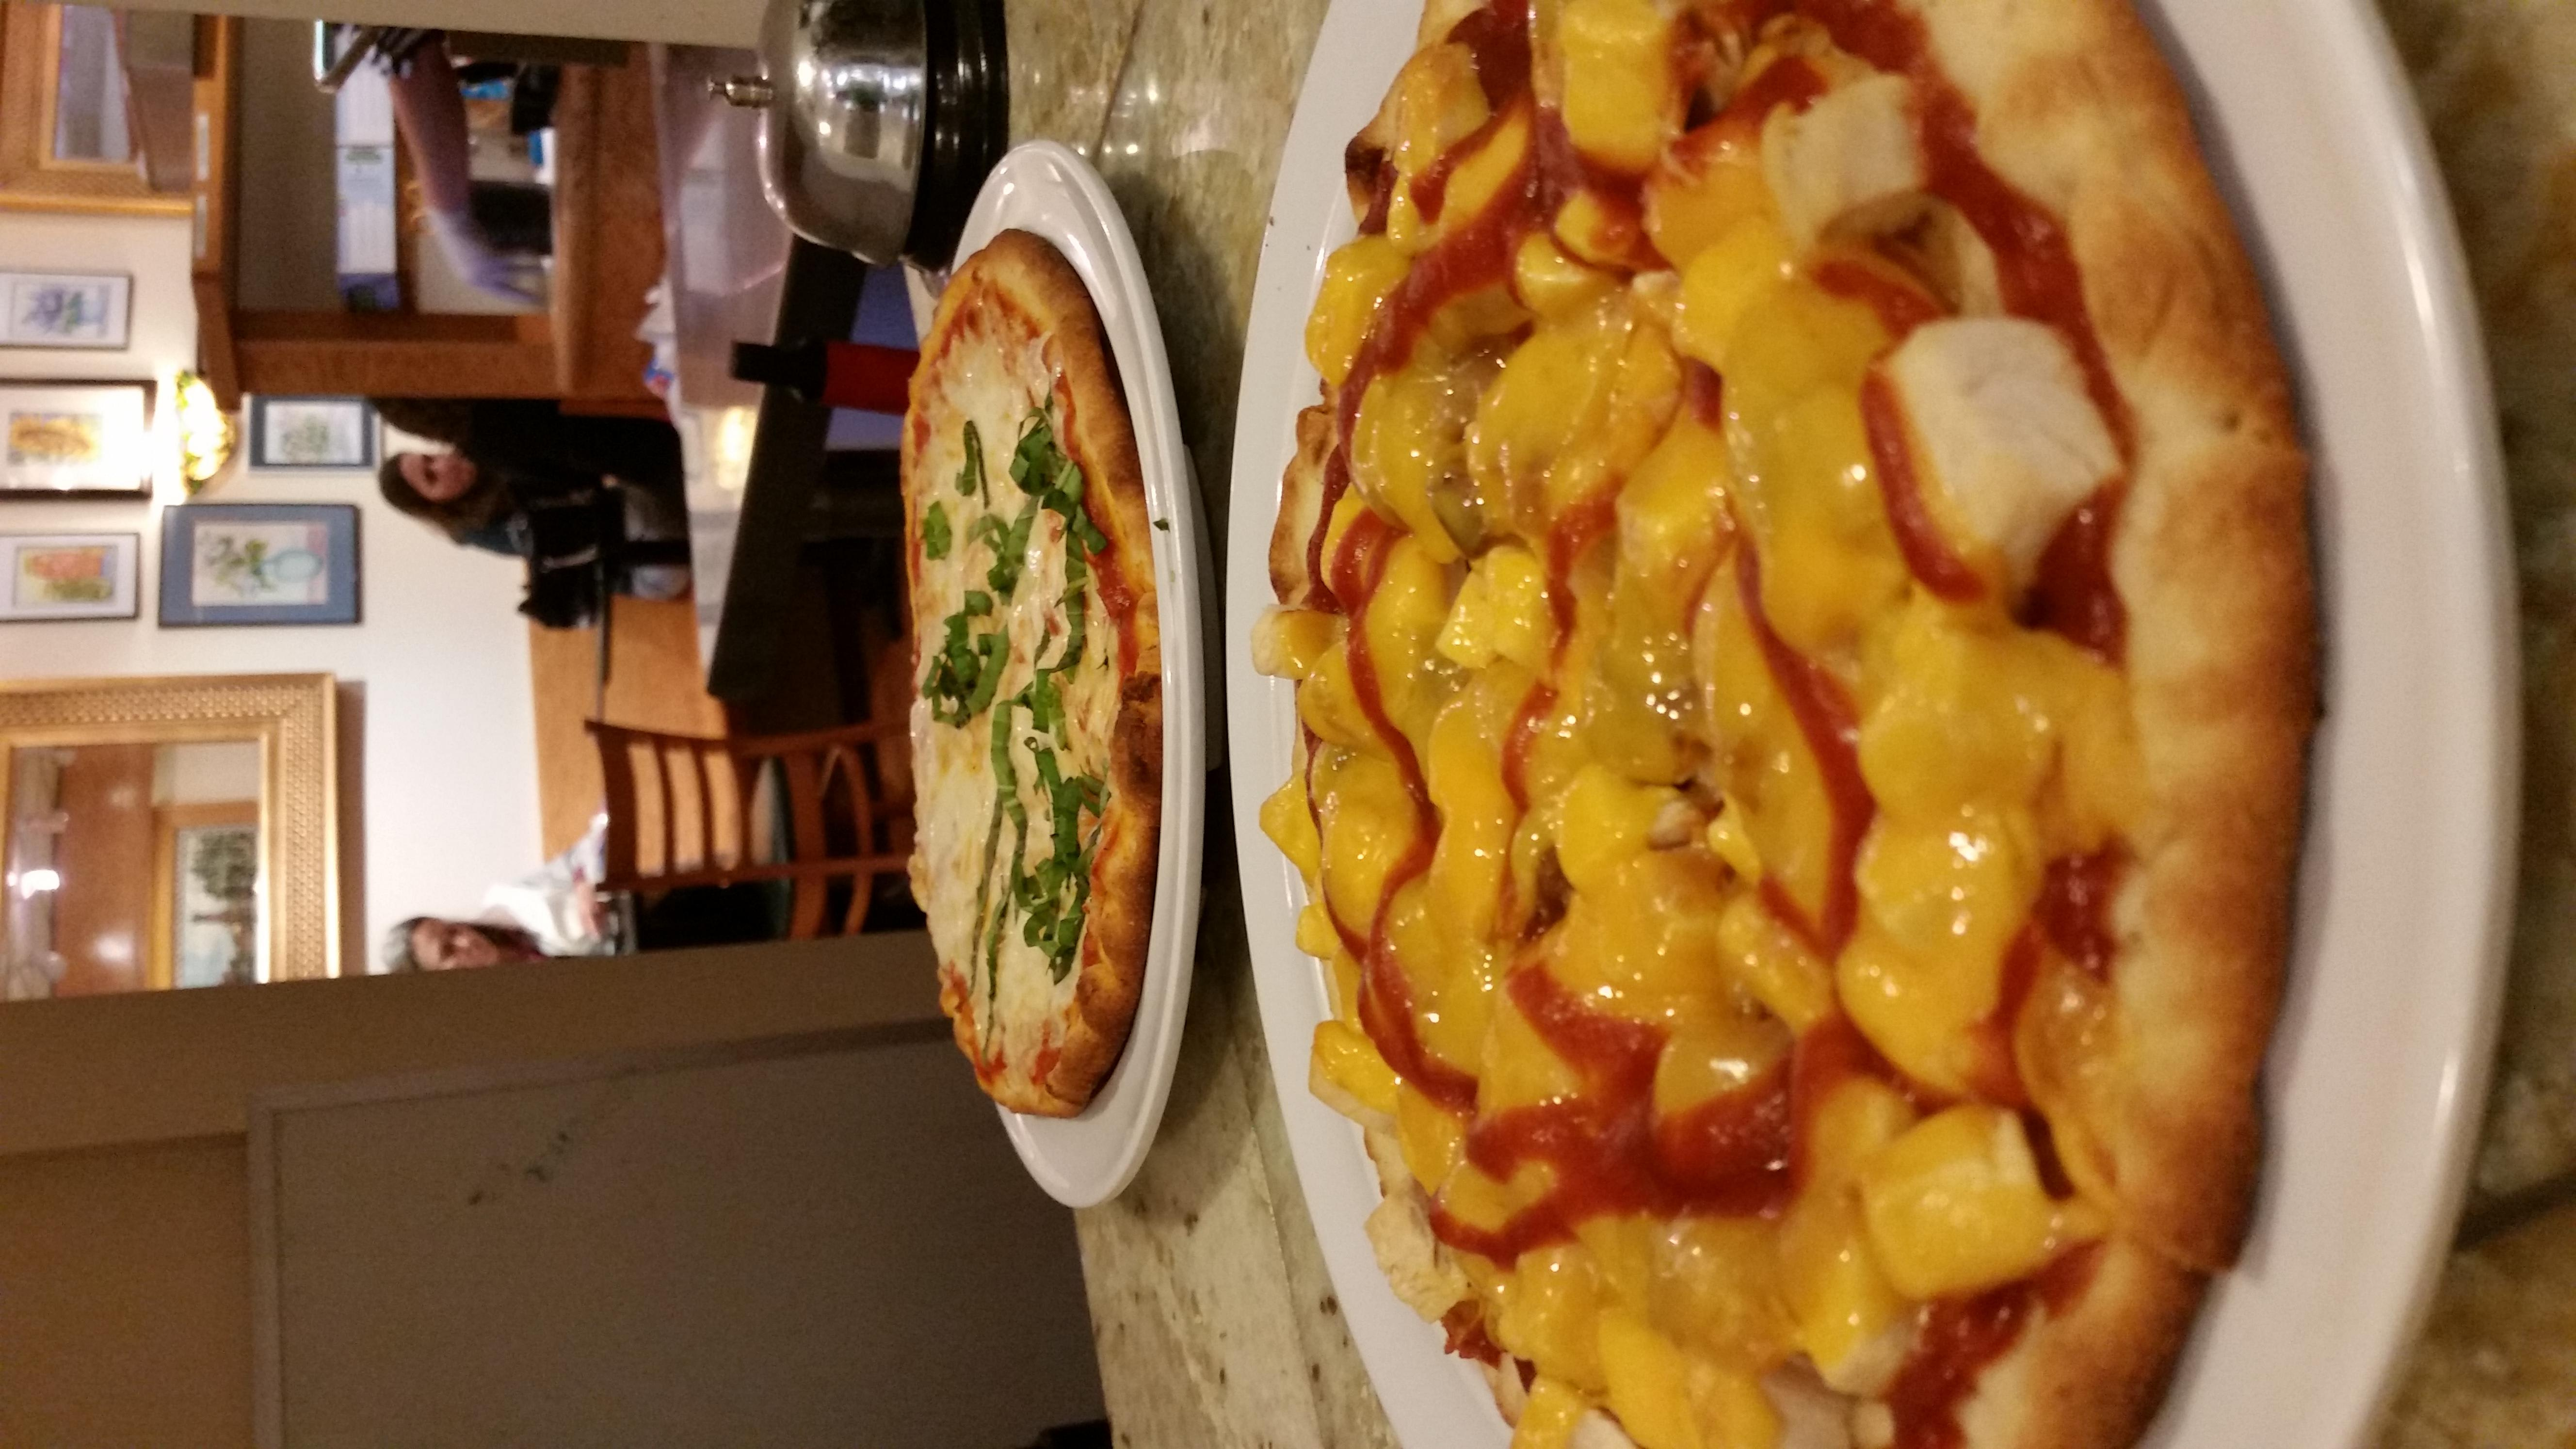 Margarita and BBQ Chicken Pizzette at South Street Creamery Cafe